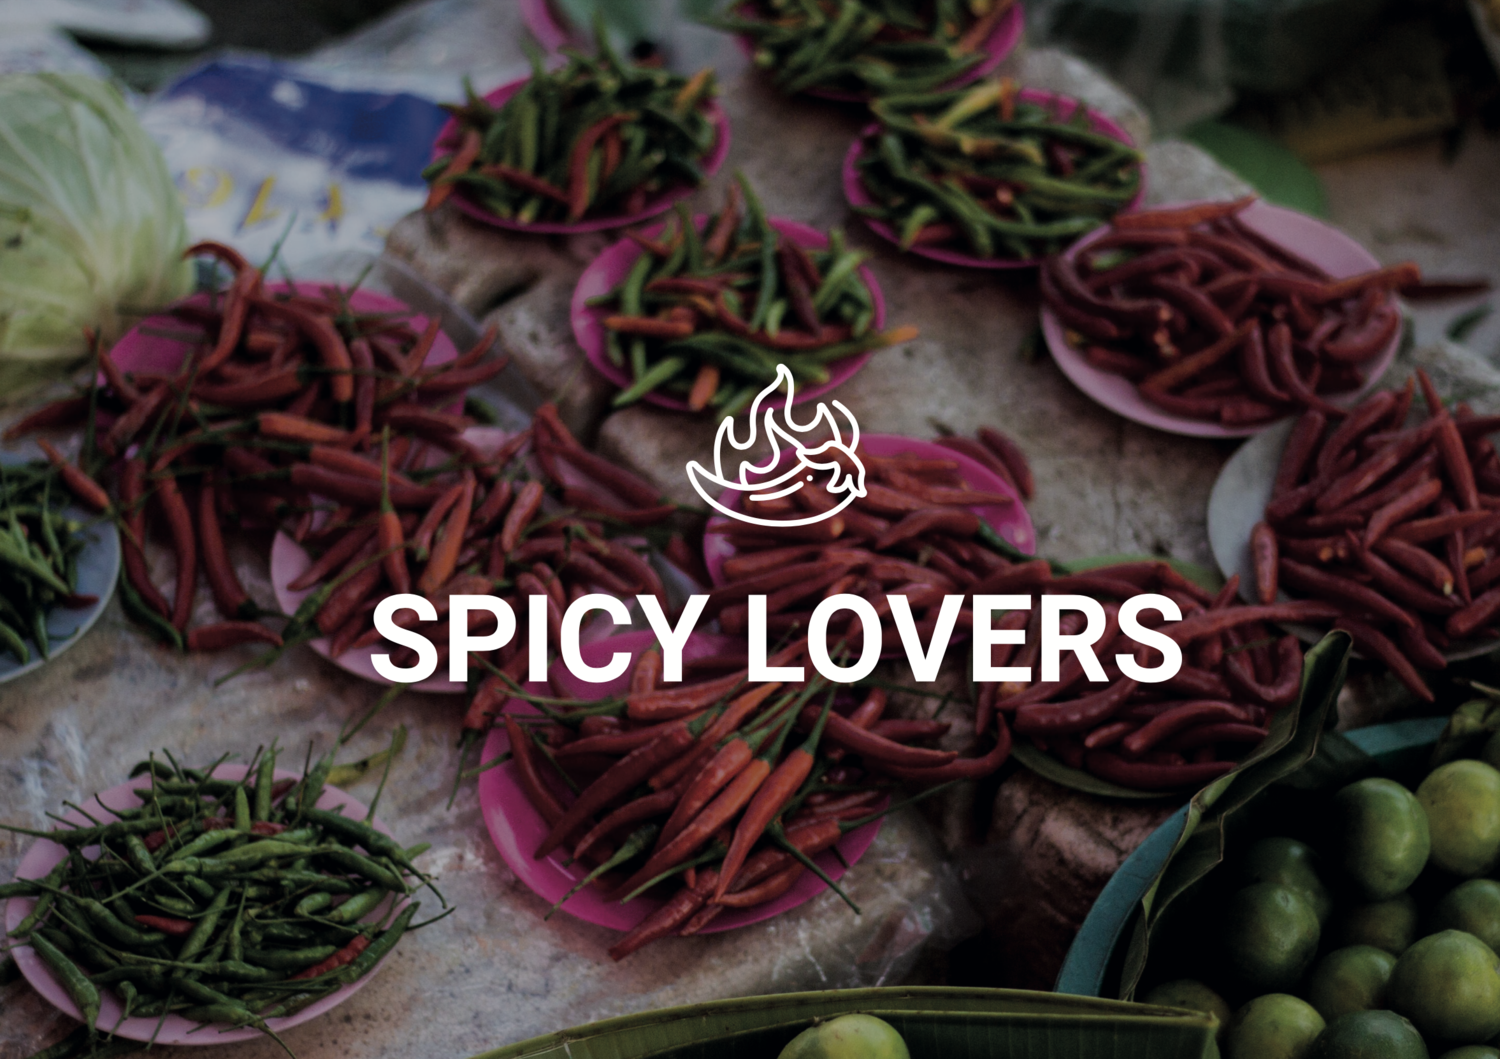 Spicy Lovers